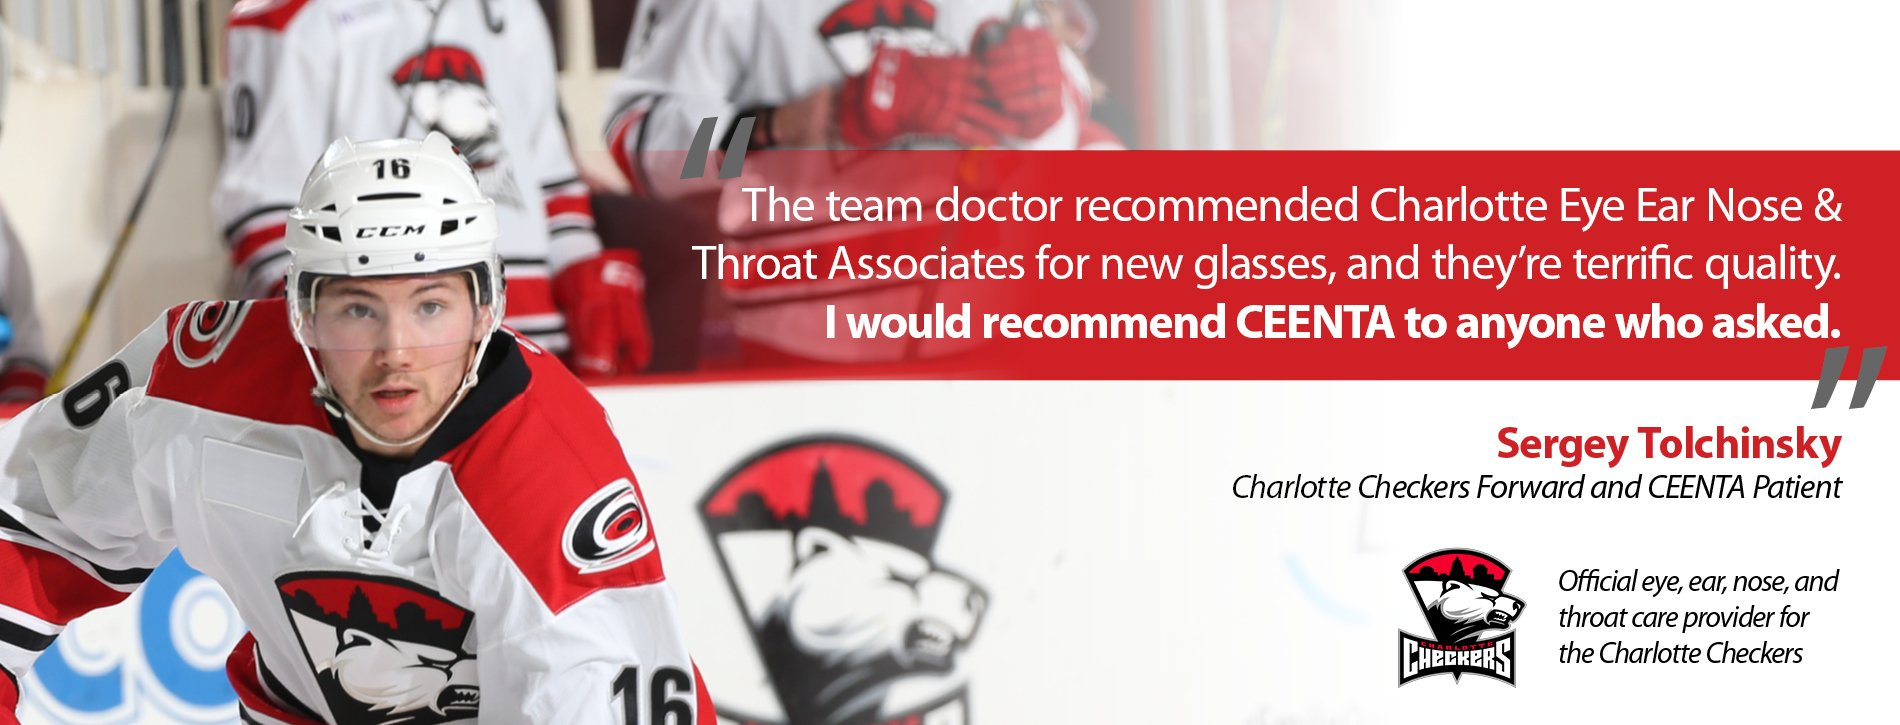 charlotte eye ear nose throat associates p a ceenta the team doctor recommended charlotte eye ear nose throat associates for new glasses and they re terrific quality i would recommend to anyone